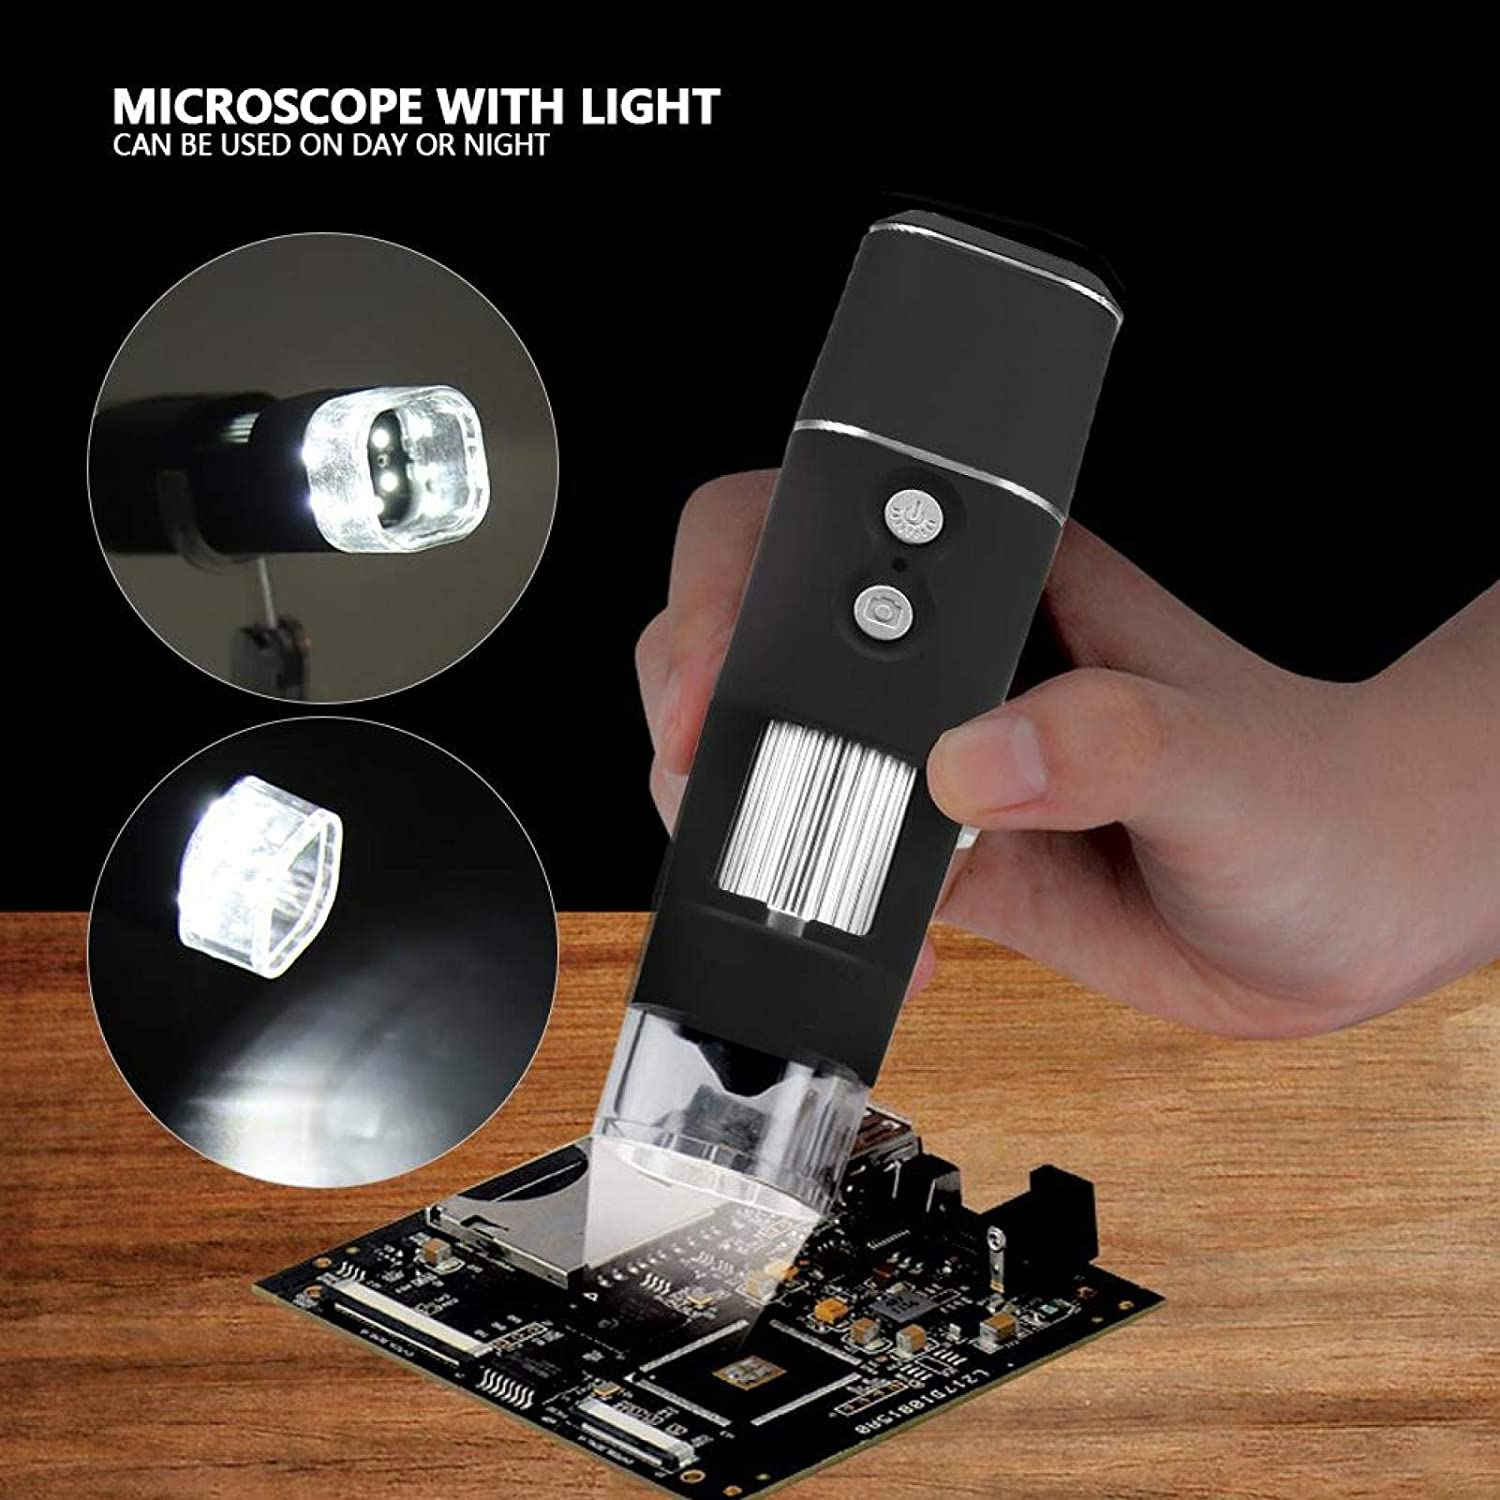 Microscope Mini WiFi Magnification Endoscope 1000X Digital Magnifier for Kids Students Adults